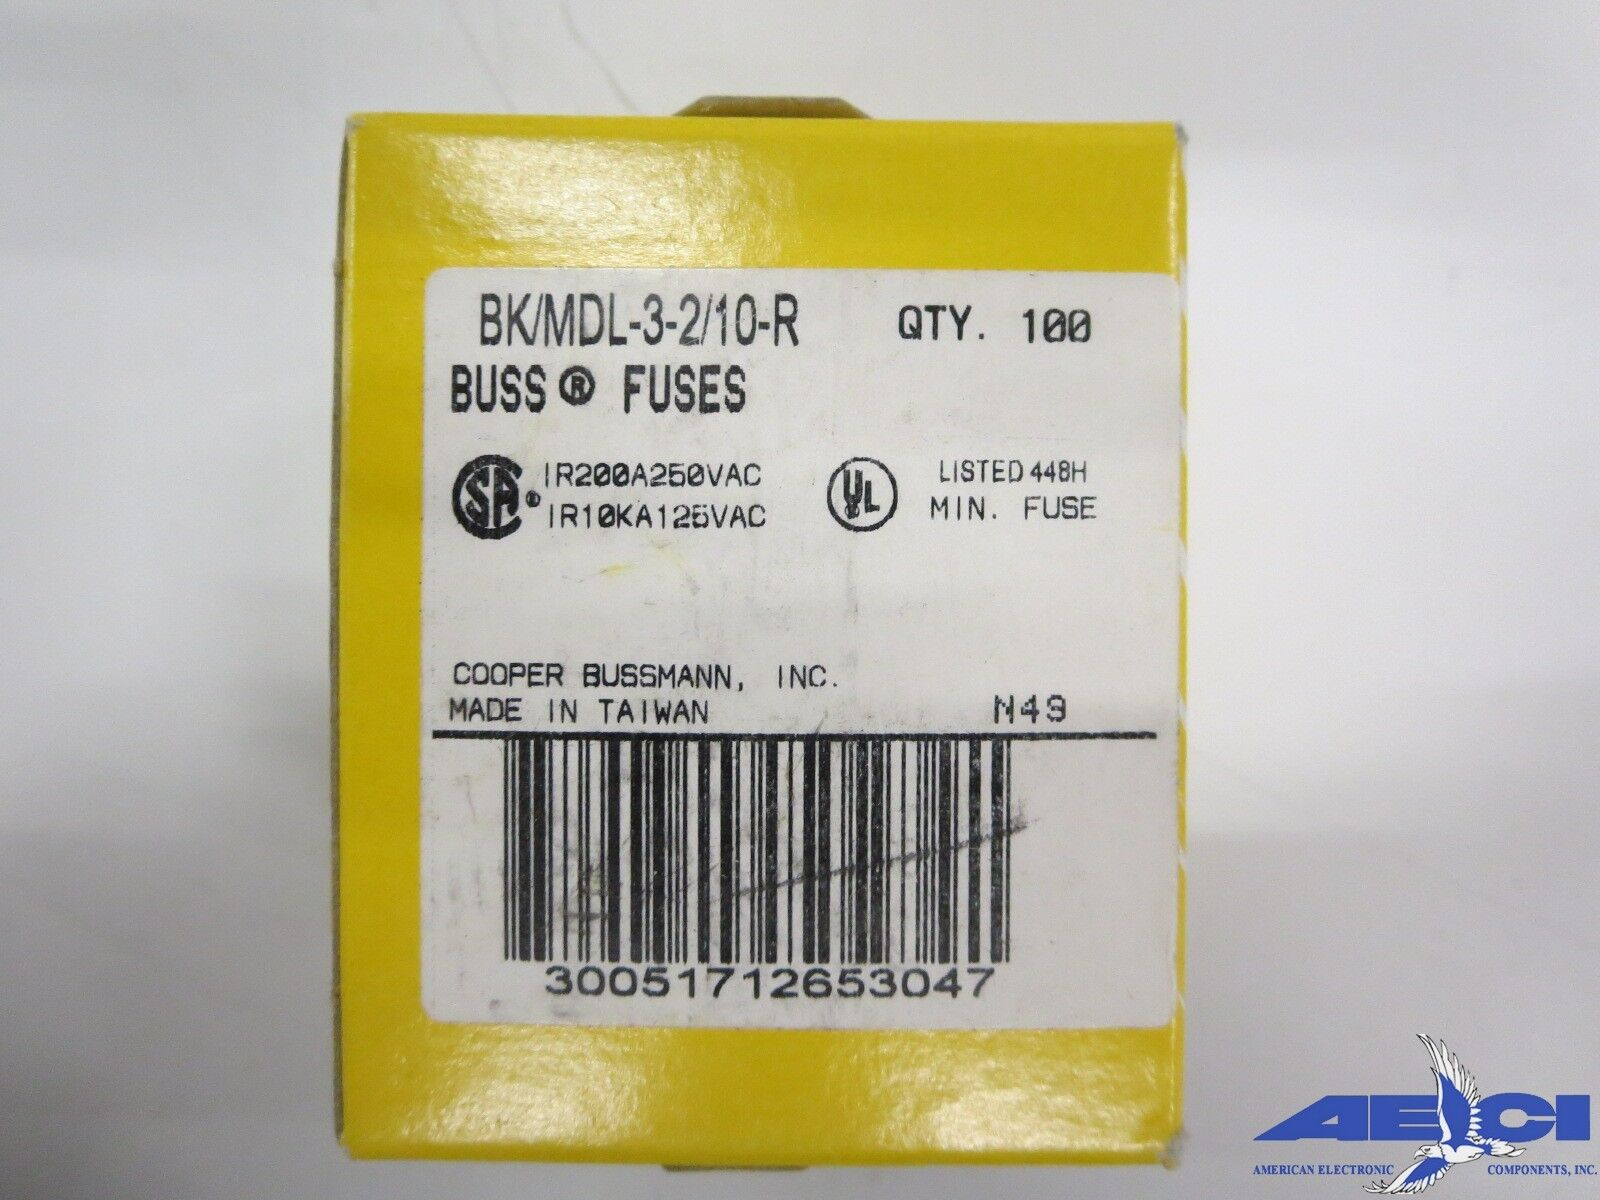 Cooper Bussmann Bk Mdl 3 2 10 R Fuse Box Of 100 10000 Picclick Buss 4 See More